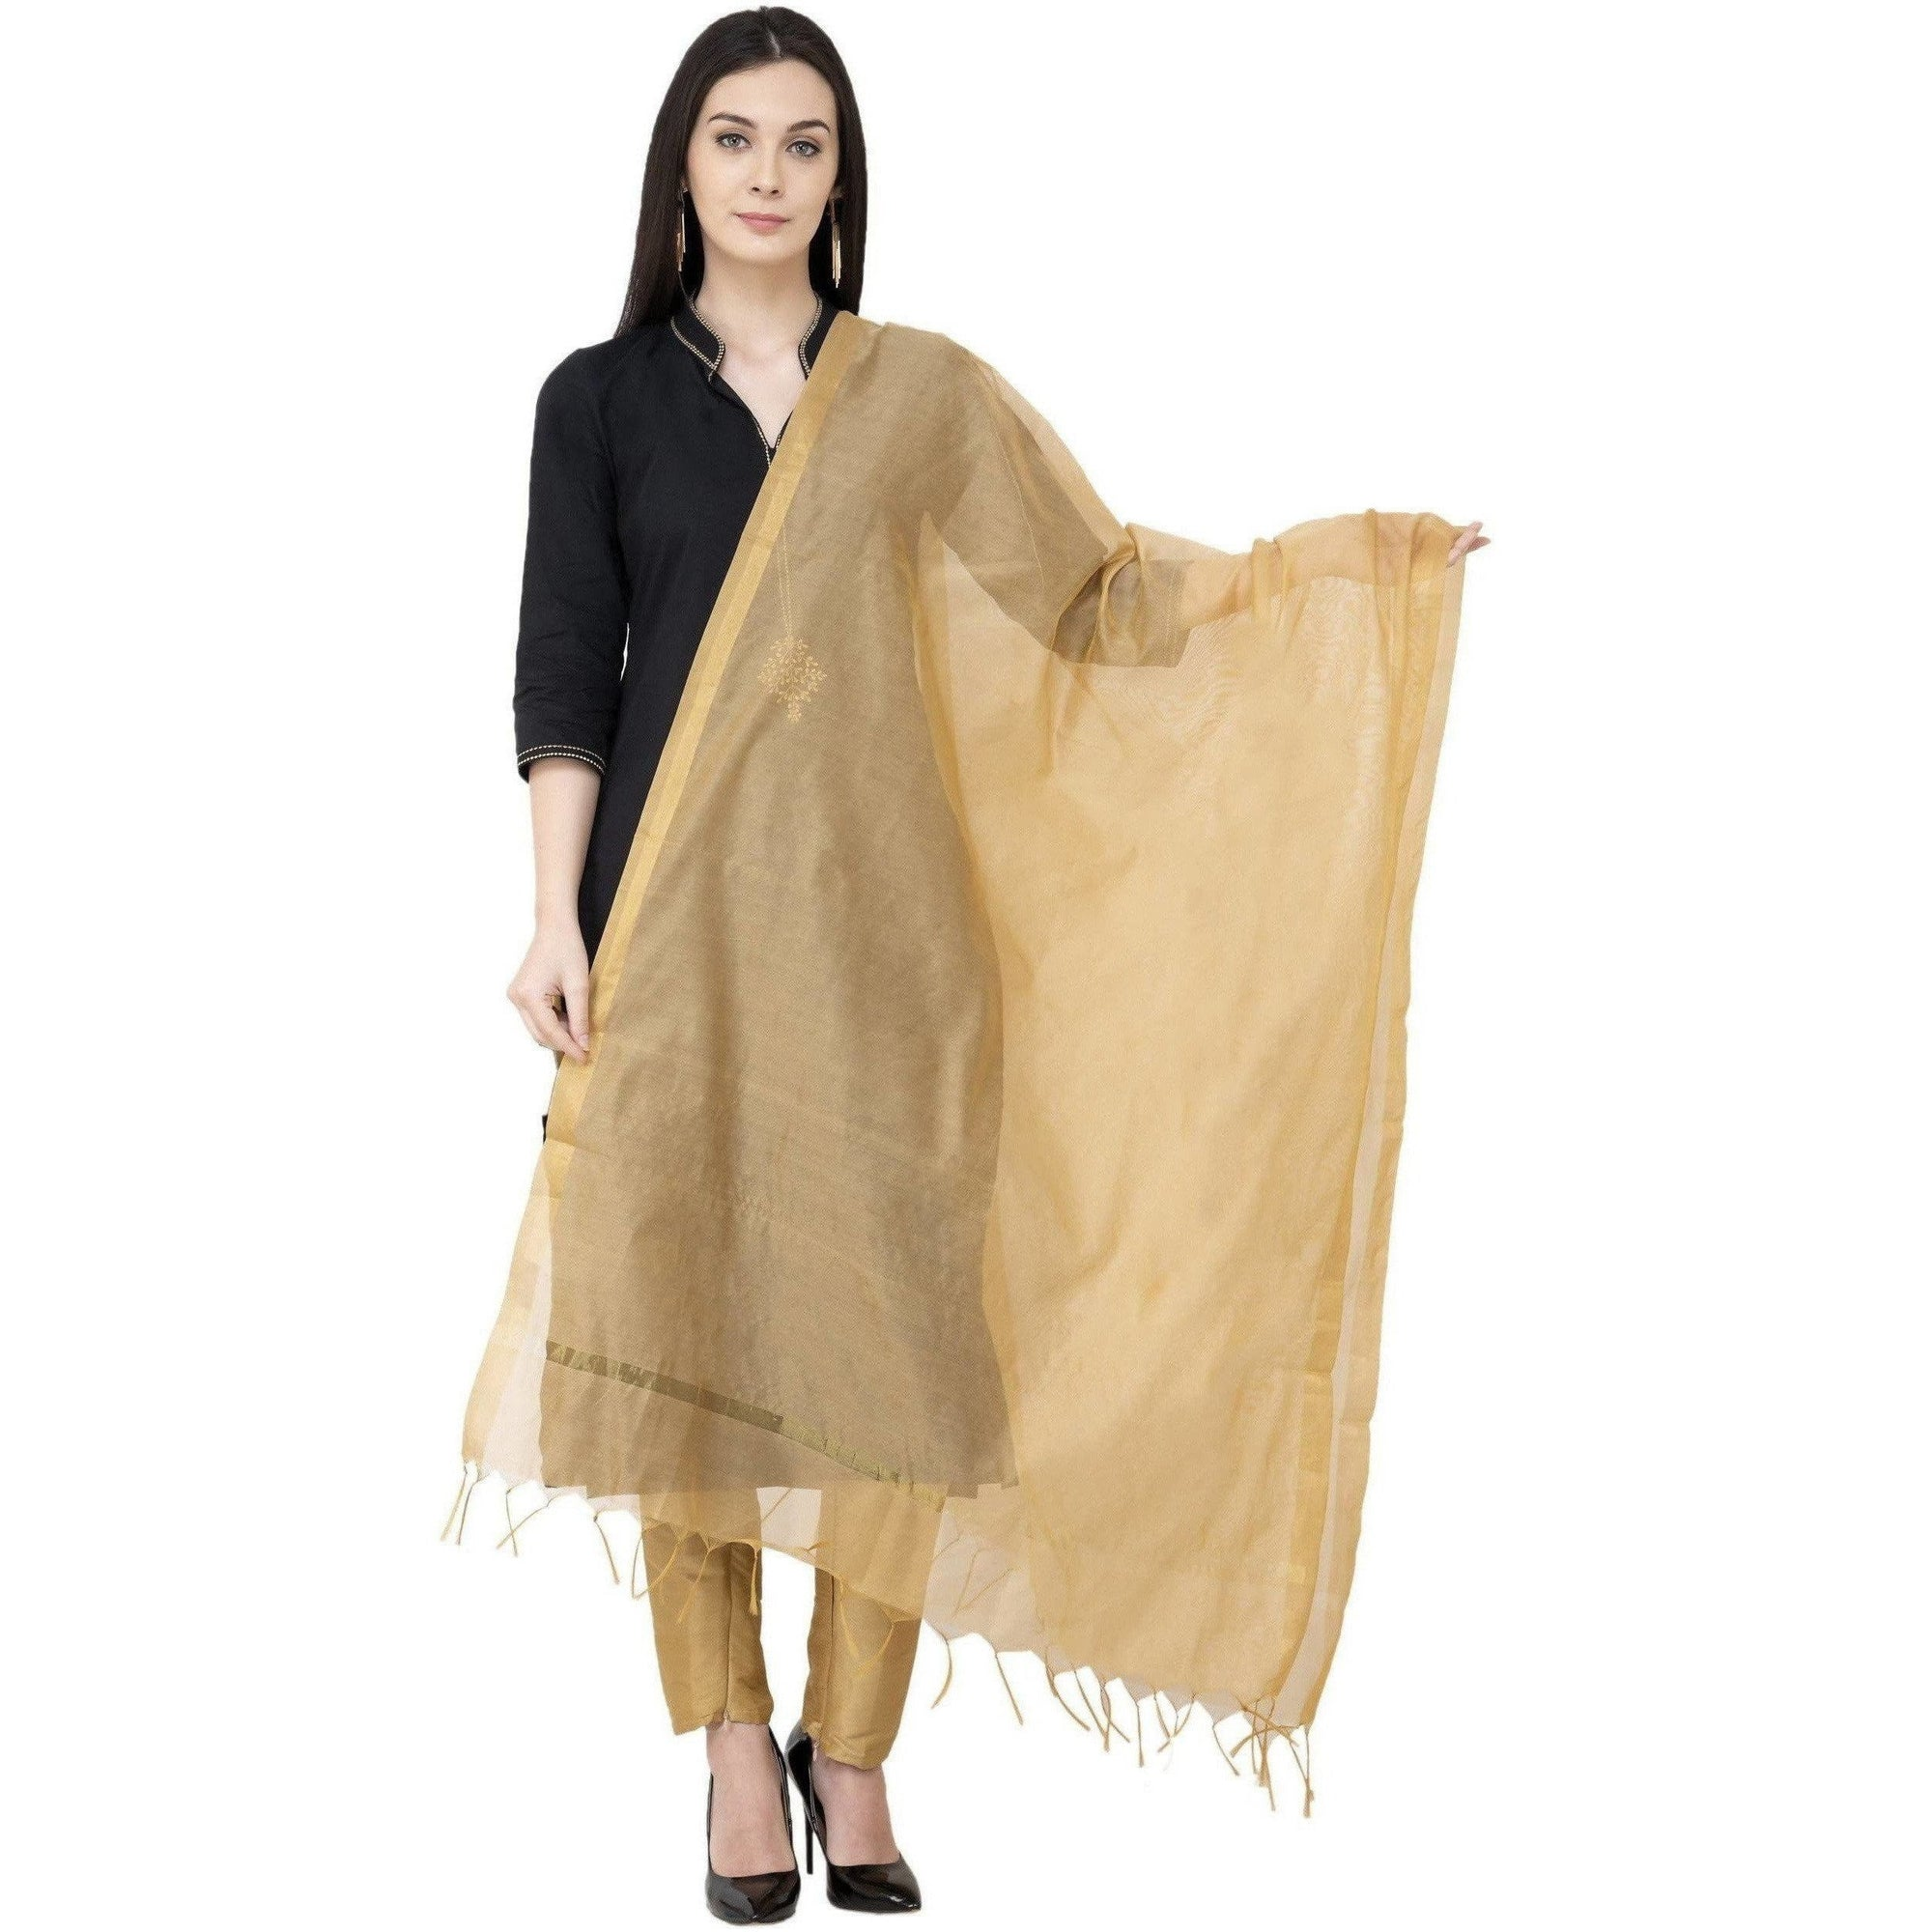 A R SILK Chanderi Piping Regular Dupatta Golden Color Dupatta or Chunni